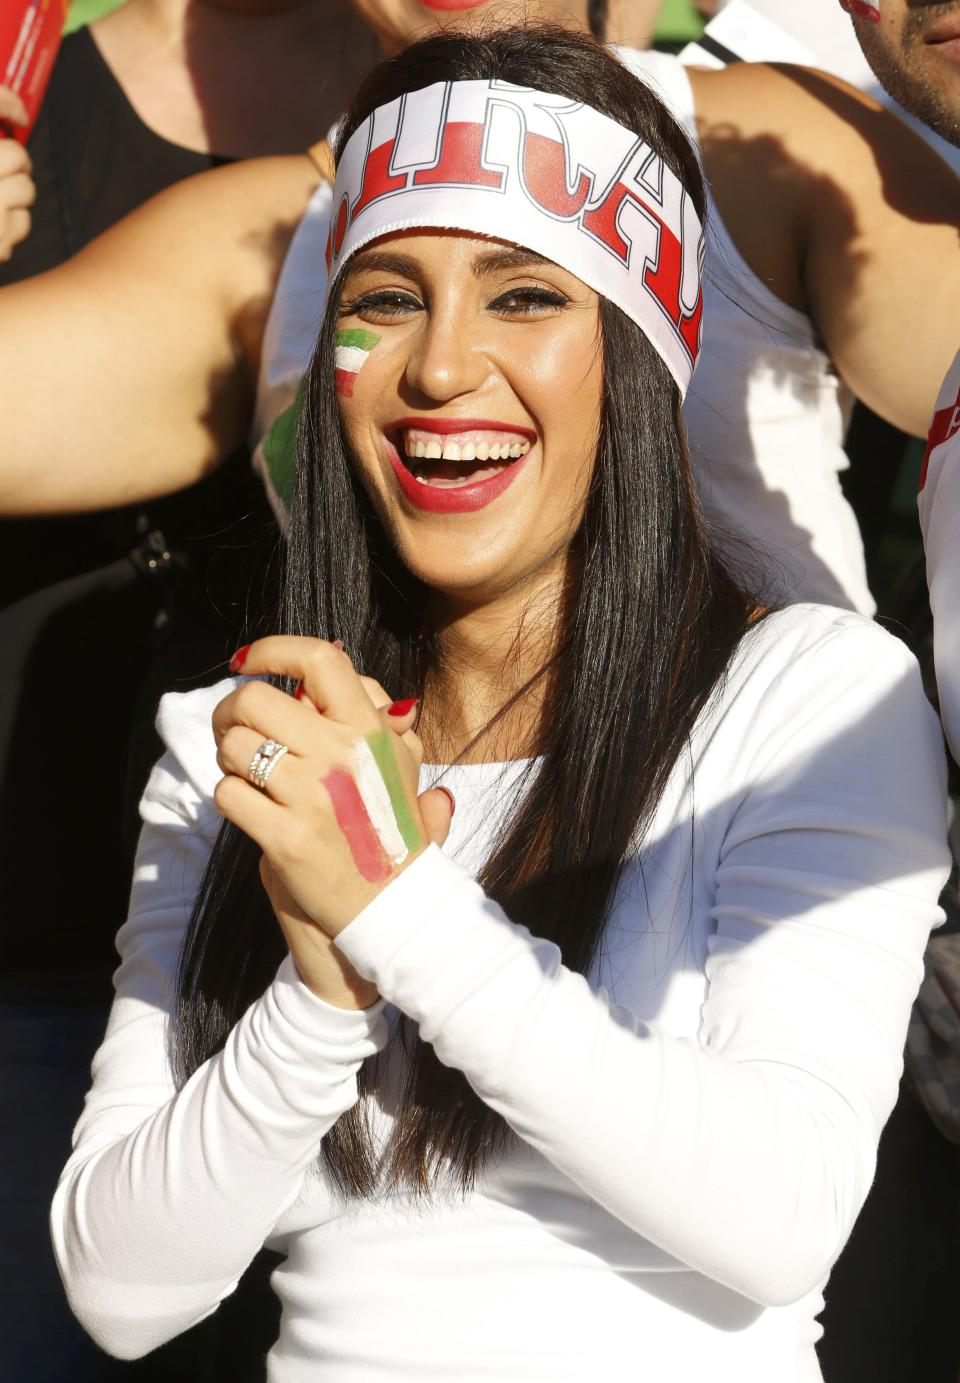 An Iran supporter cheers before the Asian Cup Group C soccer match betweeen Iran and Bahrain at the Rectangular stadium in Melbourne January 11, 2015. REUTERS/Brandon Malone (AUSTRALIA - Tags: SOCCER SPORT)